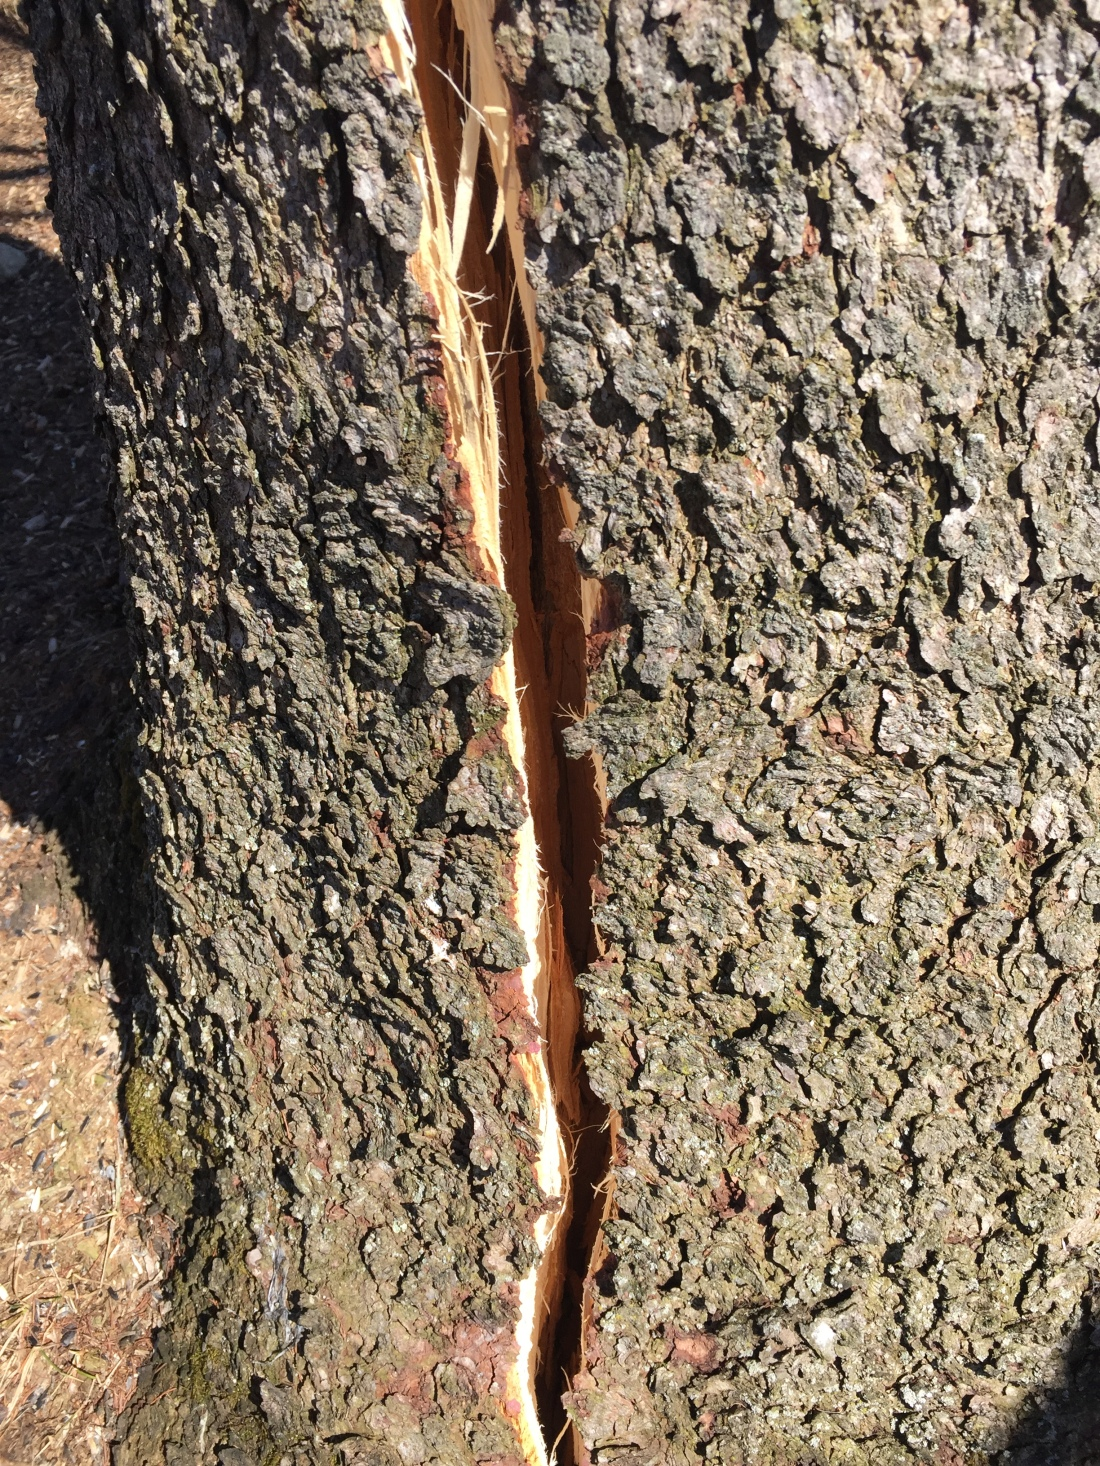 a deep vertical crack in the trunk of a standing tree